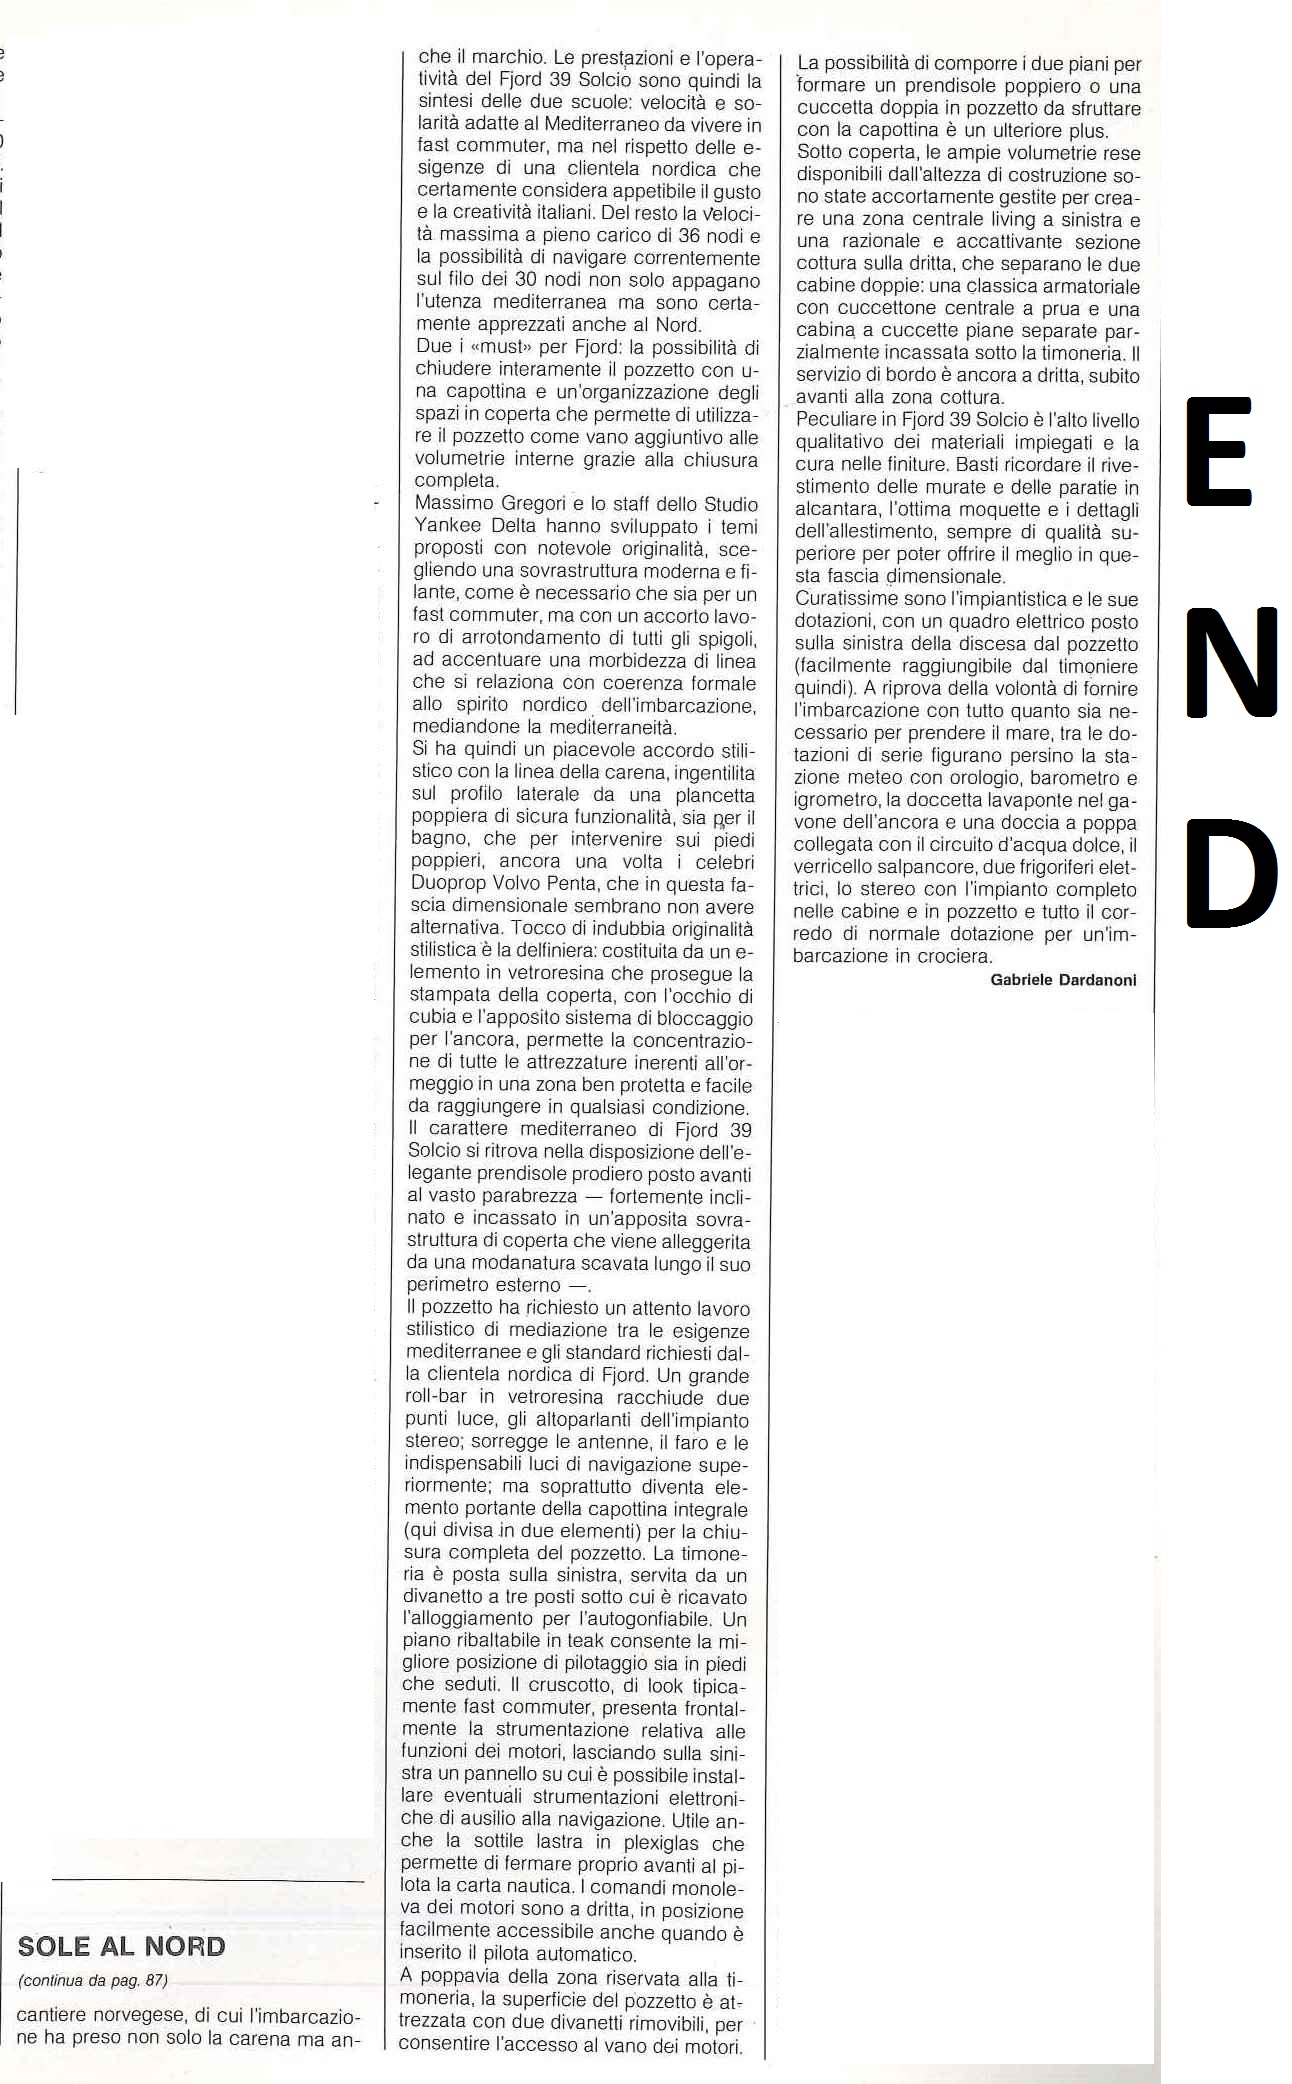 1986 09 PRESS FJORD 39 SOLCIO Uomo Mare n° 101 (28).jpg